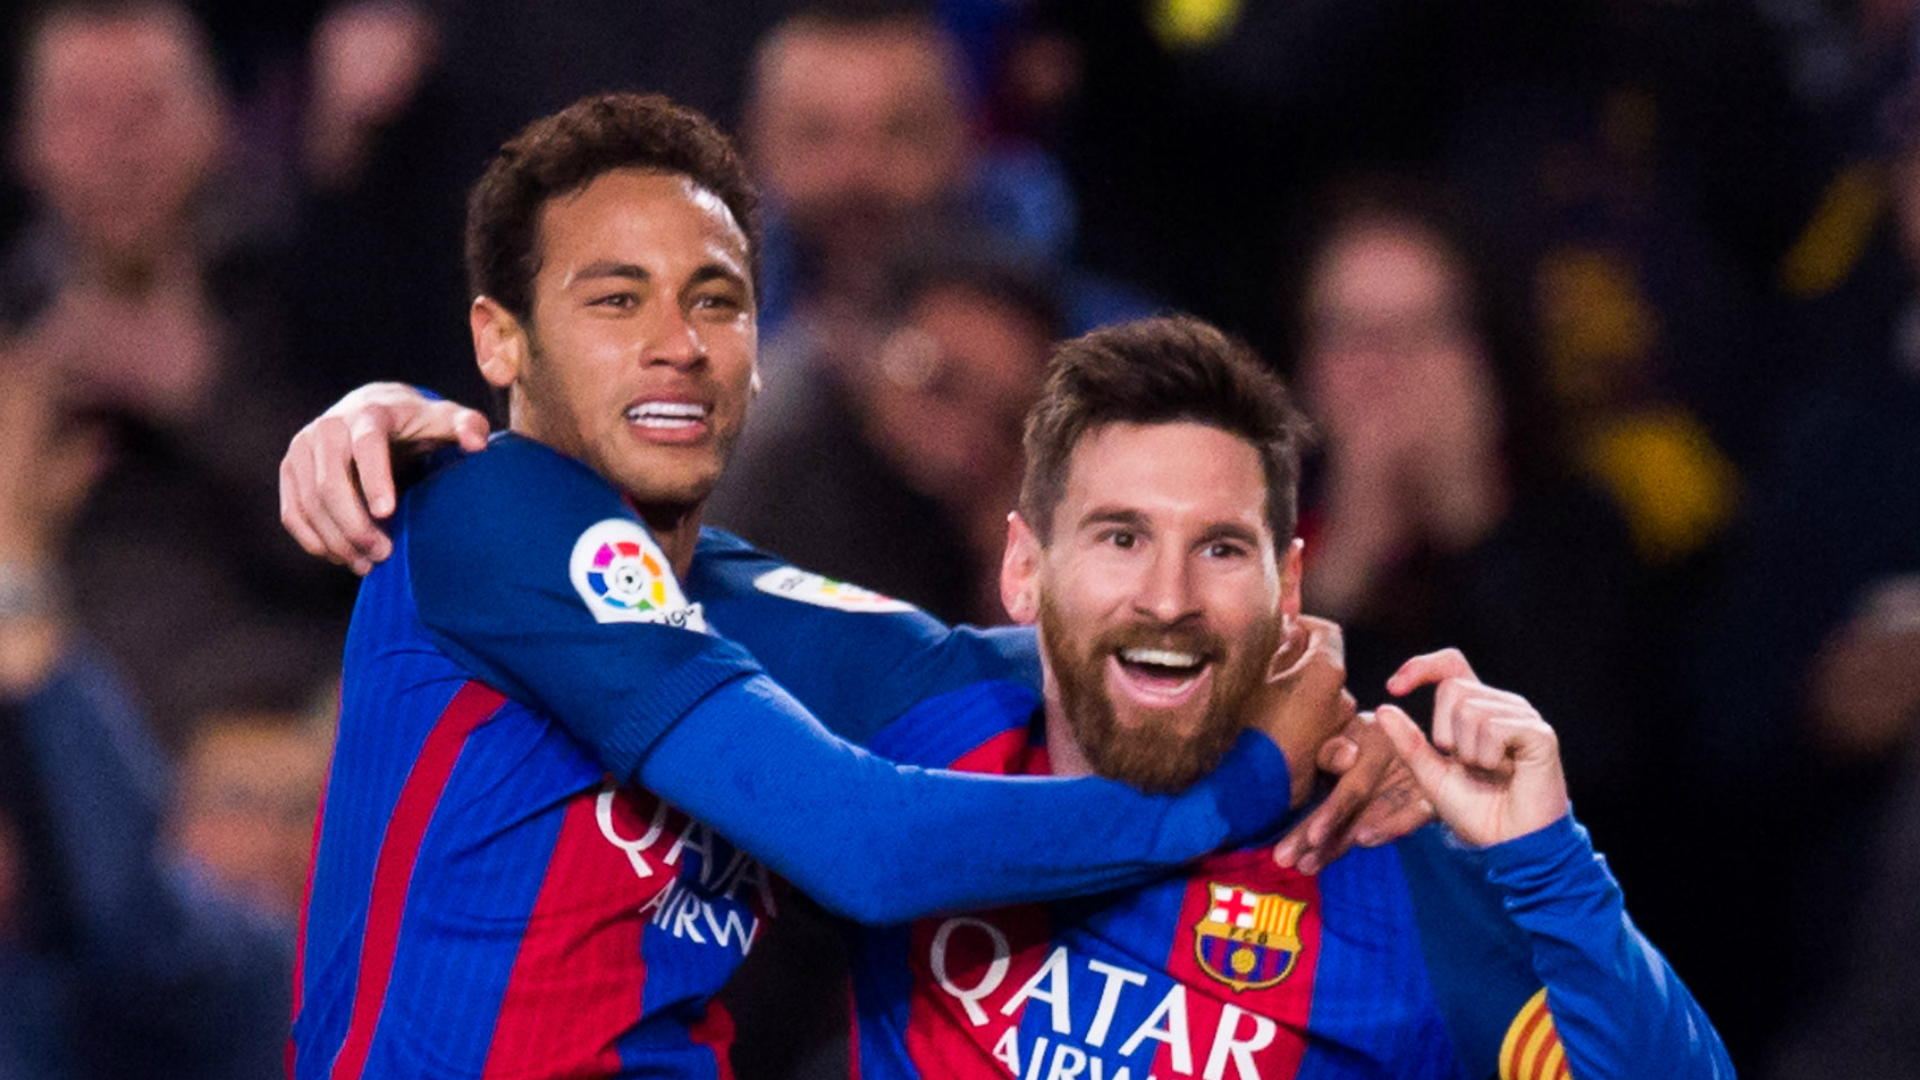 Messi: PSG star Neymar not wanted at Barcelona by some